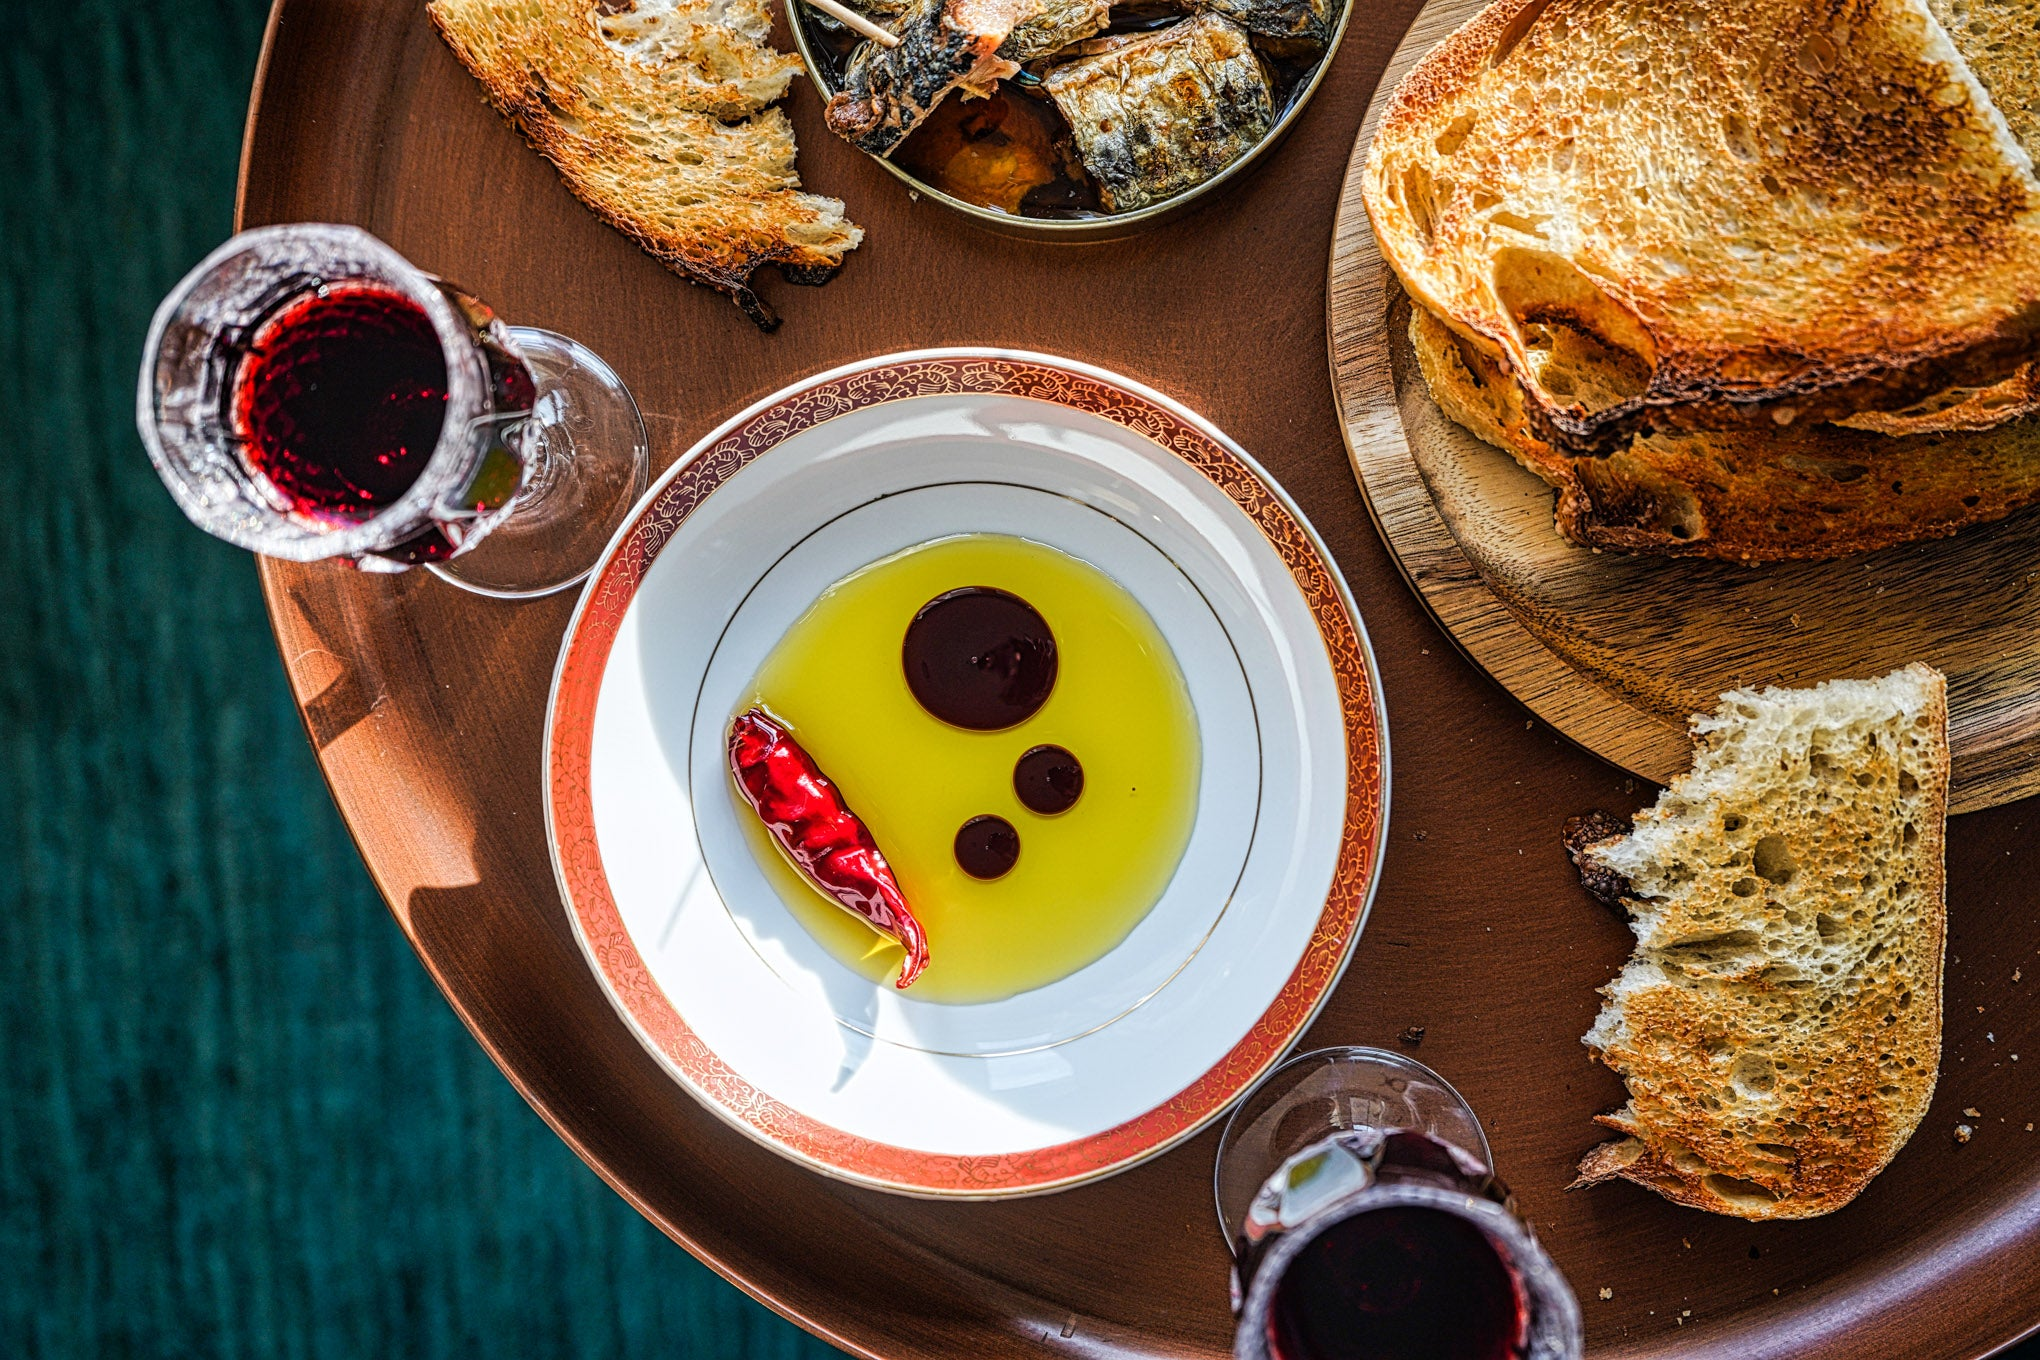 olive oil and vinegar in dish with chili pepper, on brass table with toasted bread and red wine